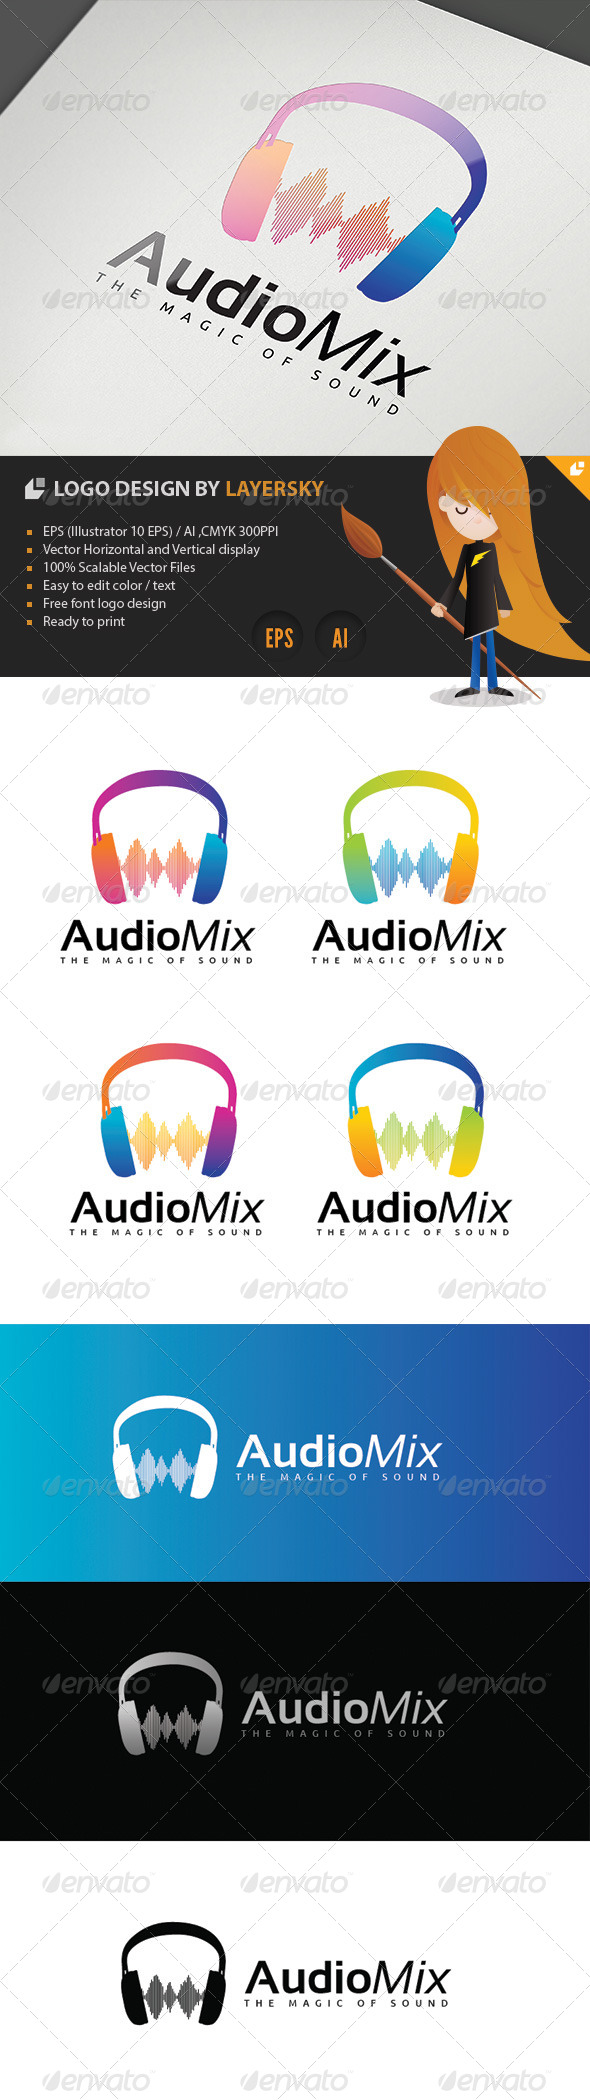 Audio Mix Logo - 3d Abstract